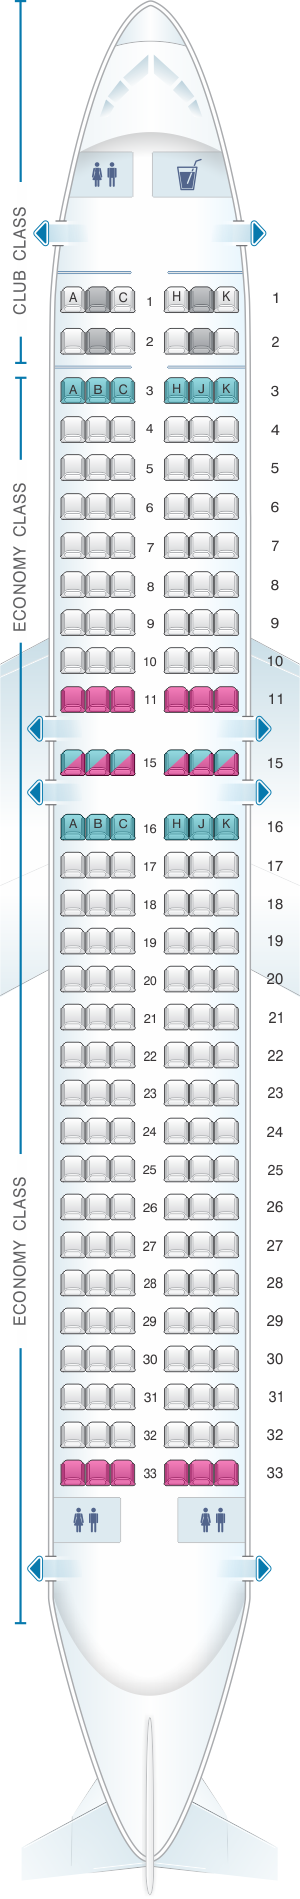 Seat map for Air Transat Airbus A320 200 Canada